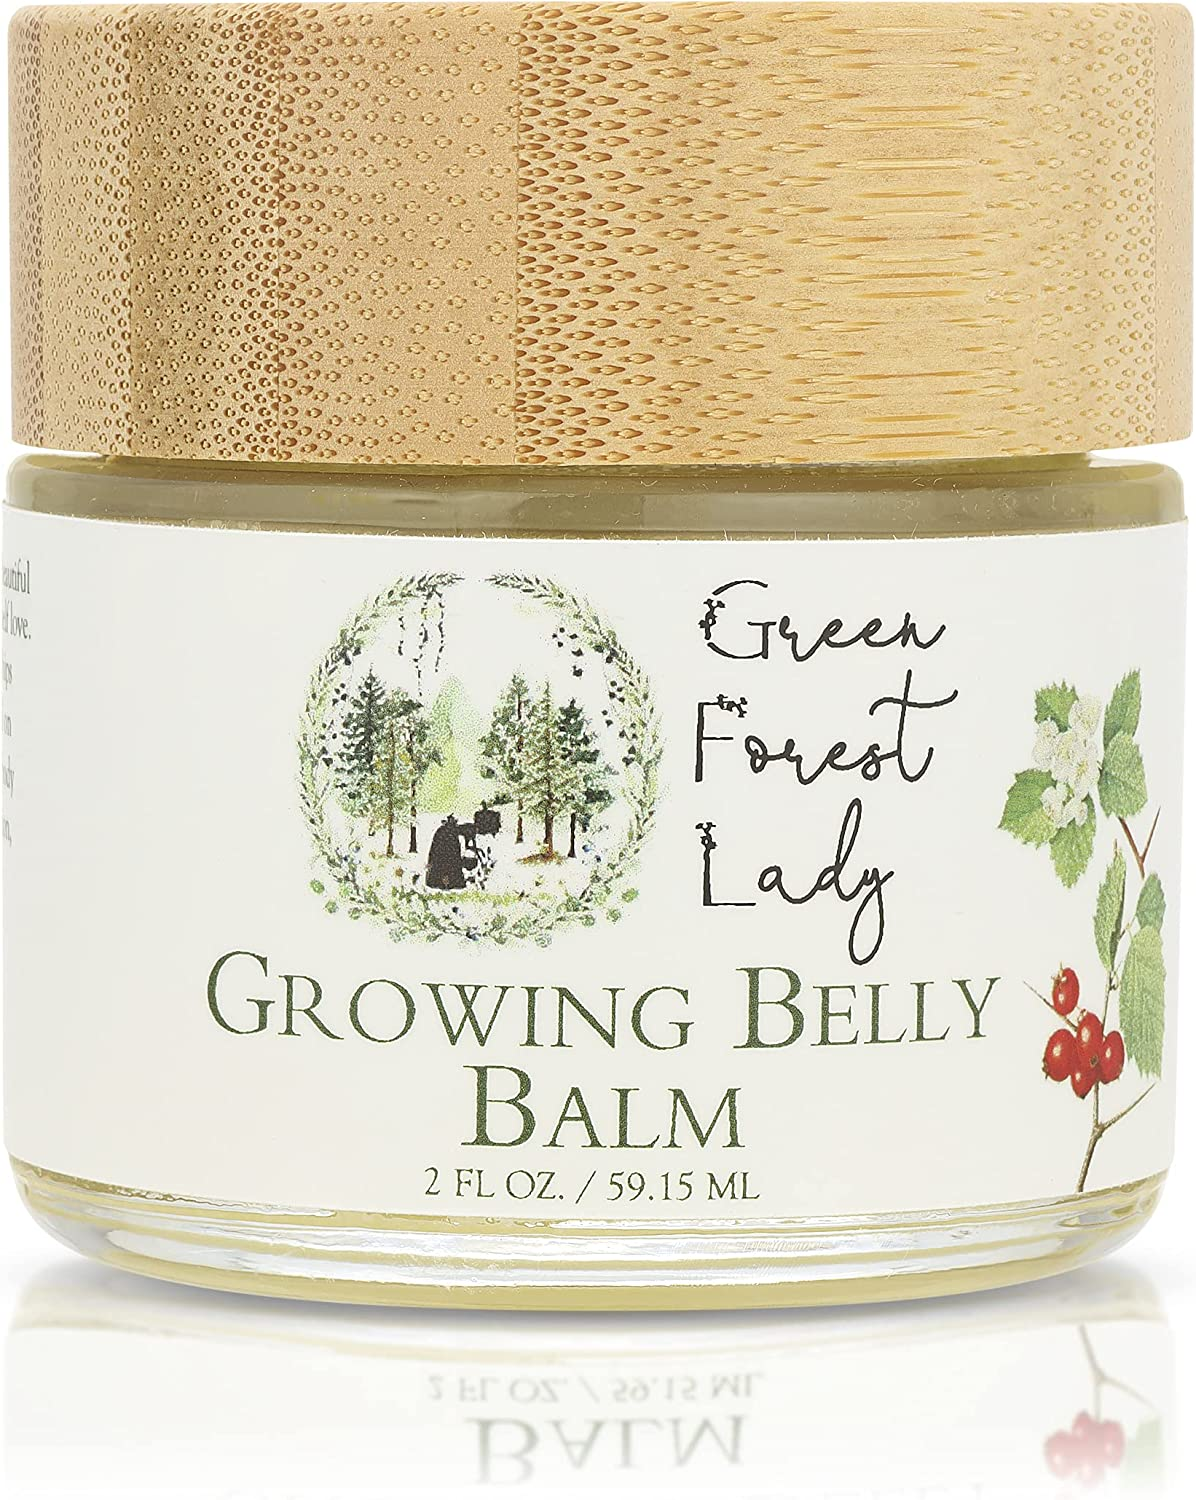 Green Forest Lady Growing Belly Balm Organic, Herbal. Help Prevent Stretch Marks, Improve Elasticity, Soothes Itching Skin, Moisturizing, for Belly, Breasts, Hips and Thighs.